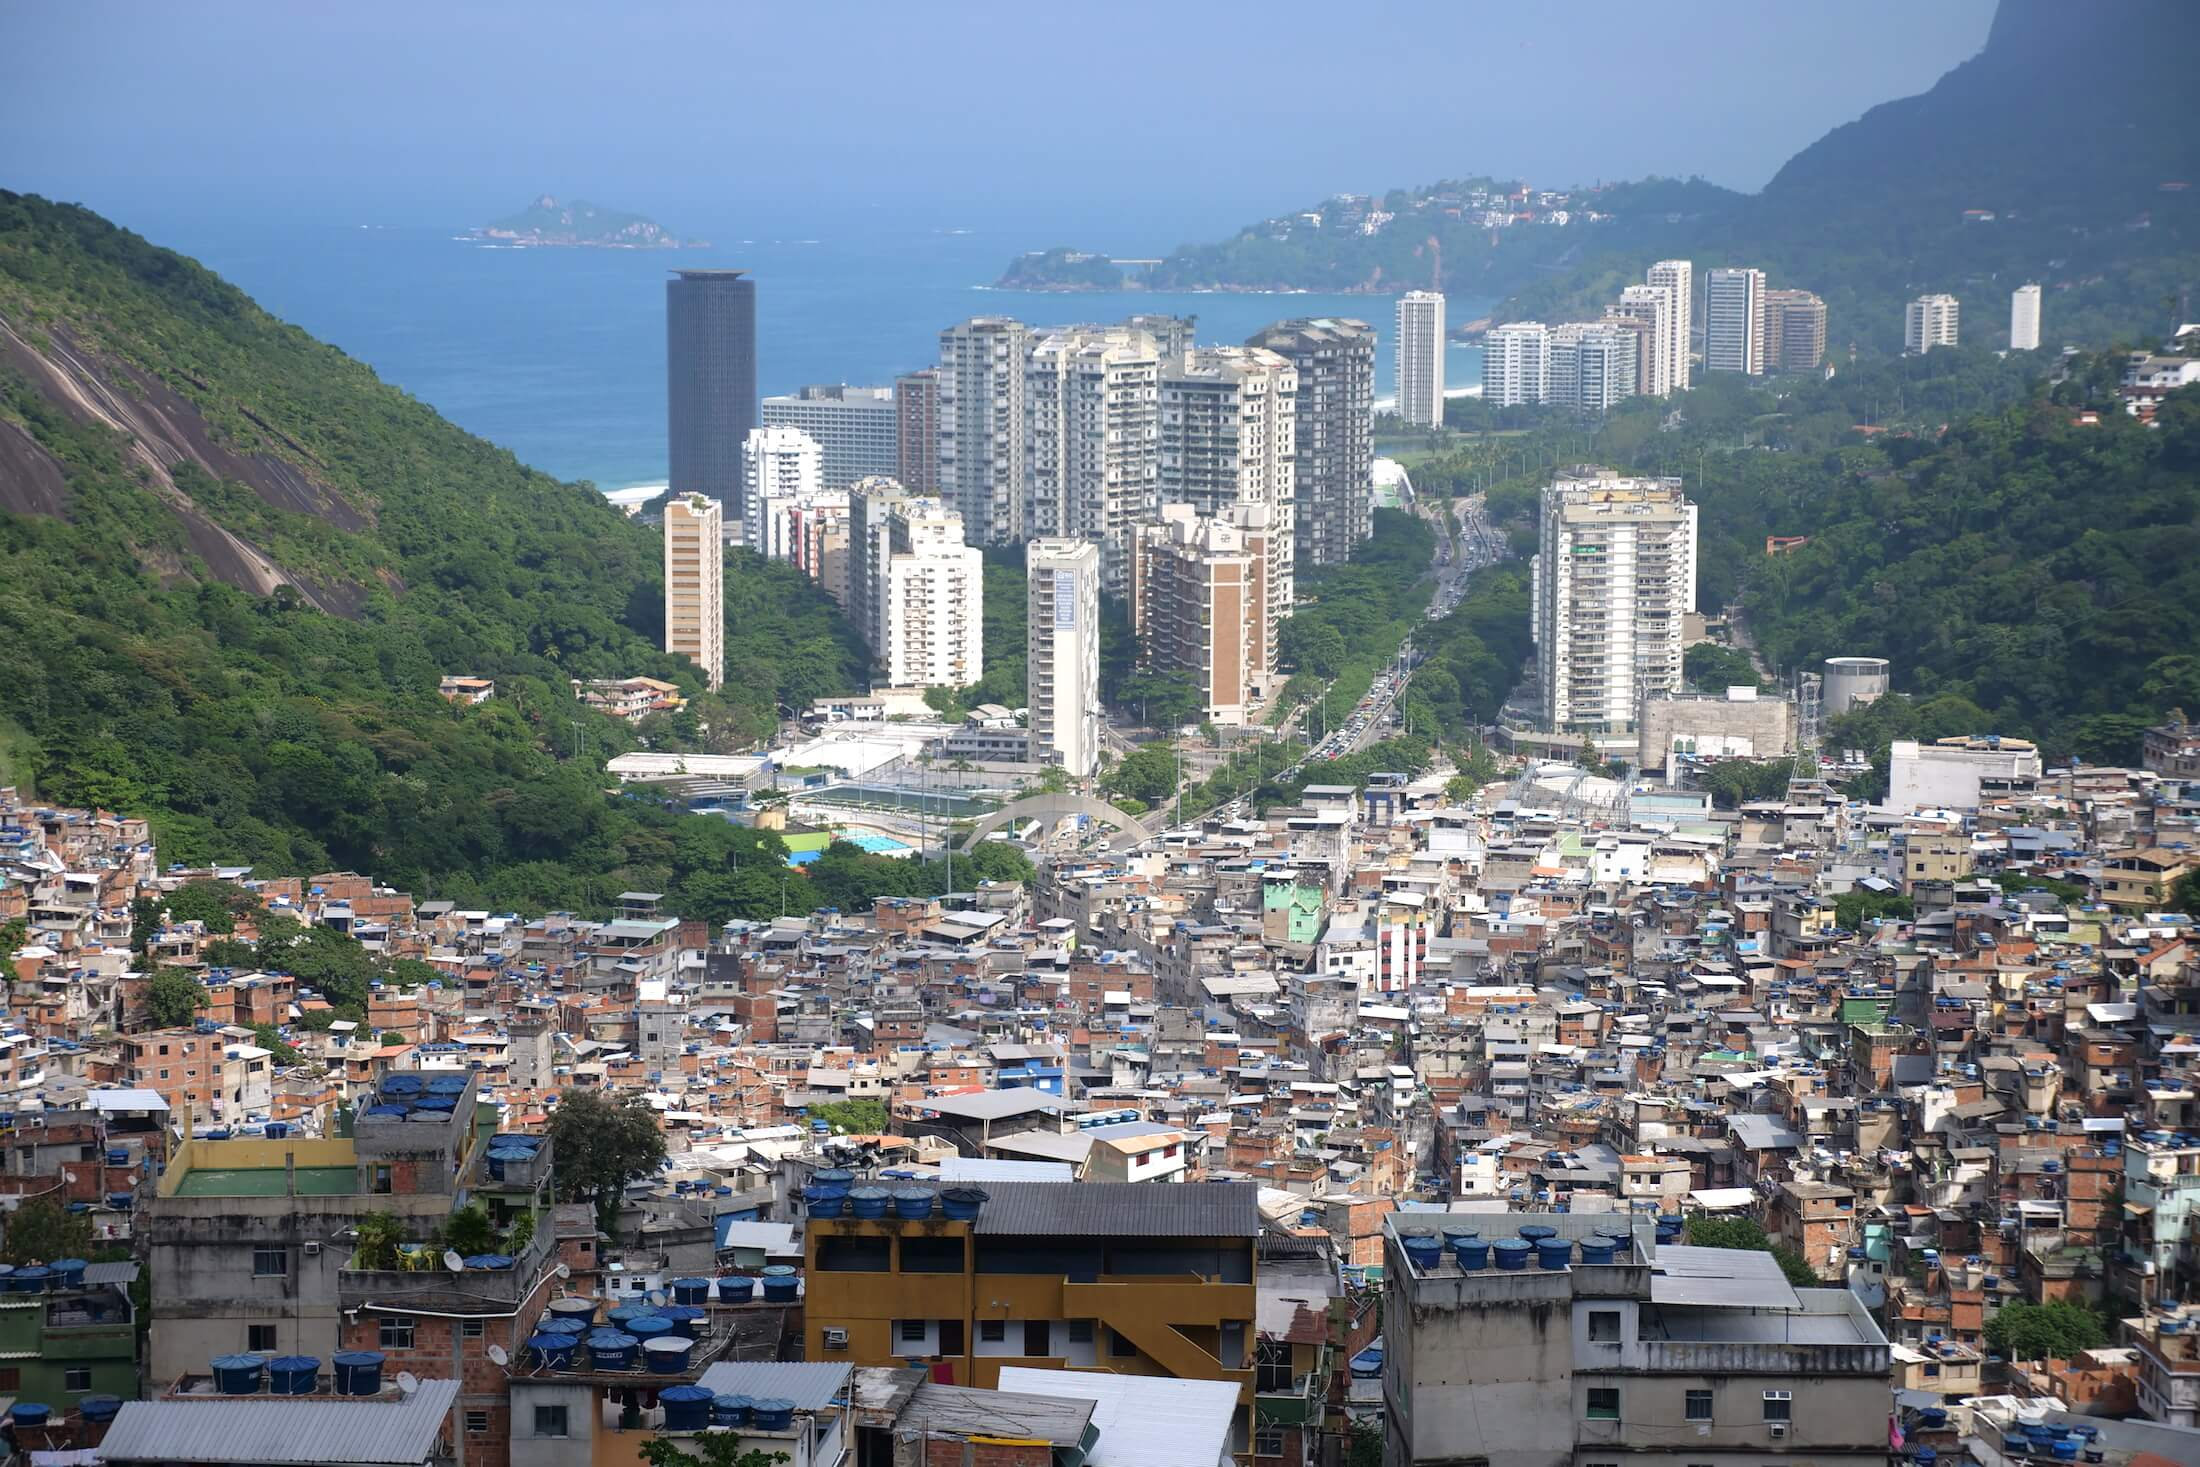 Amazing view from the Gate of Heaven in Rocinha Favela in Rio